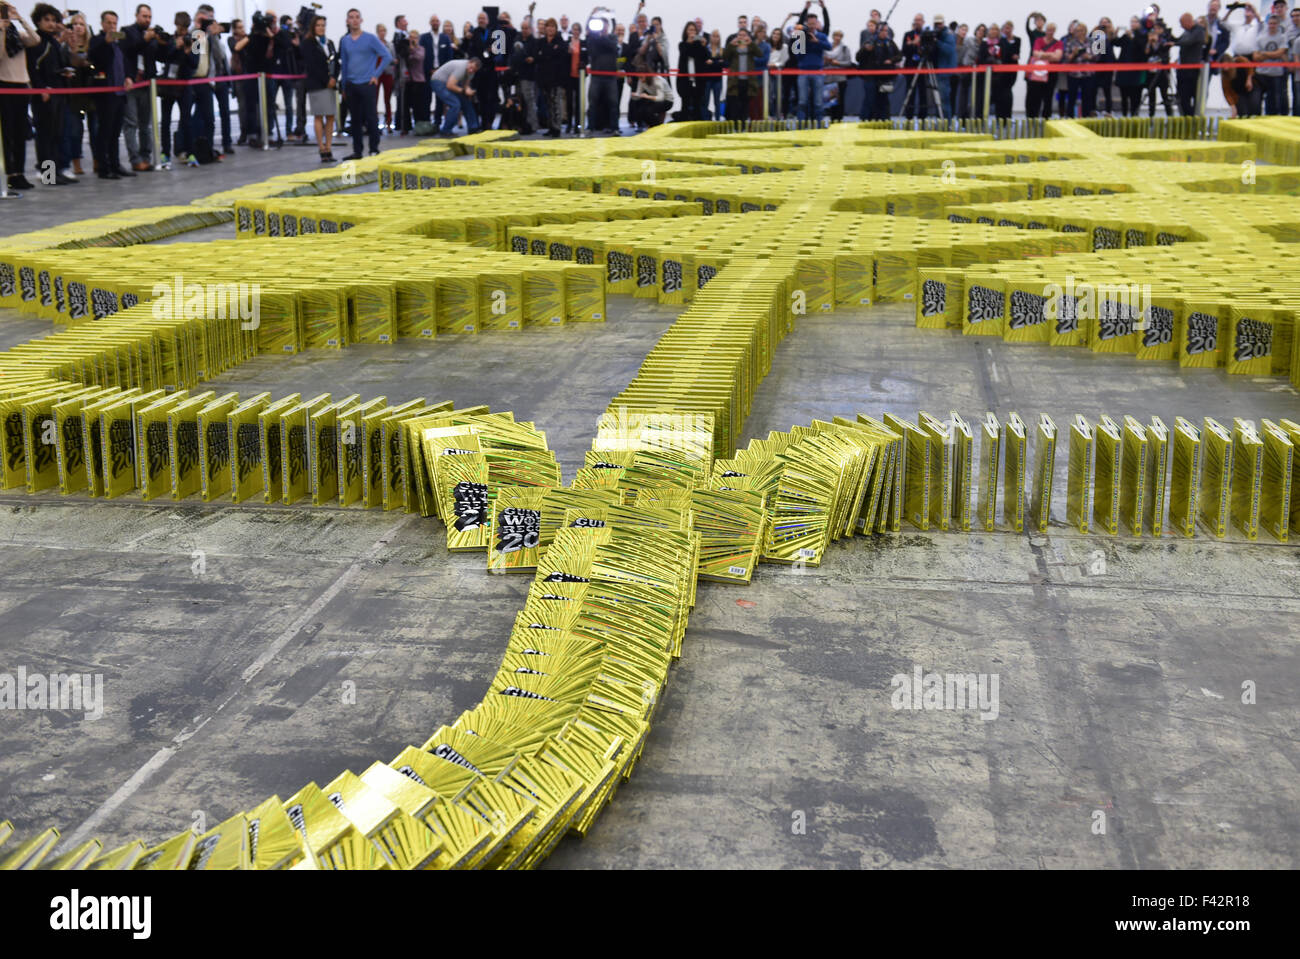 editions of the guinness book of world records fall during a world